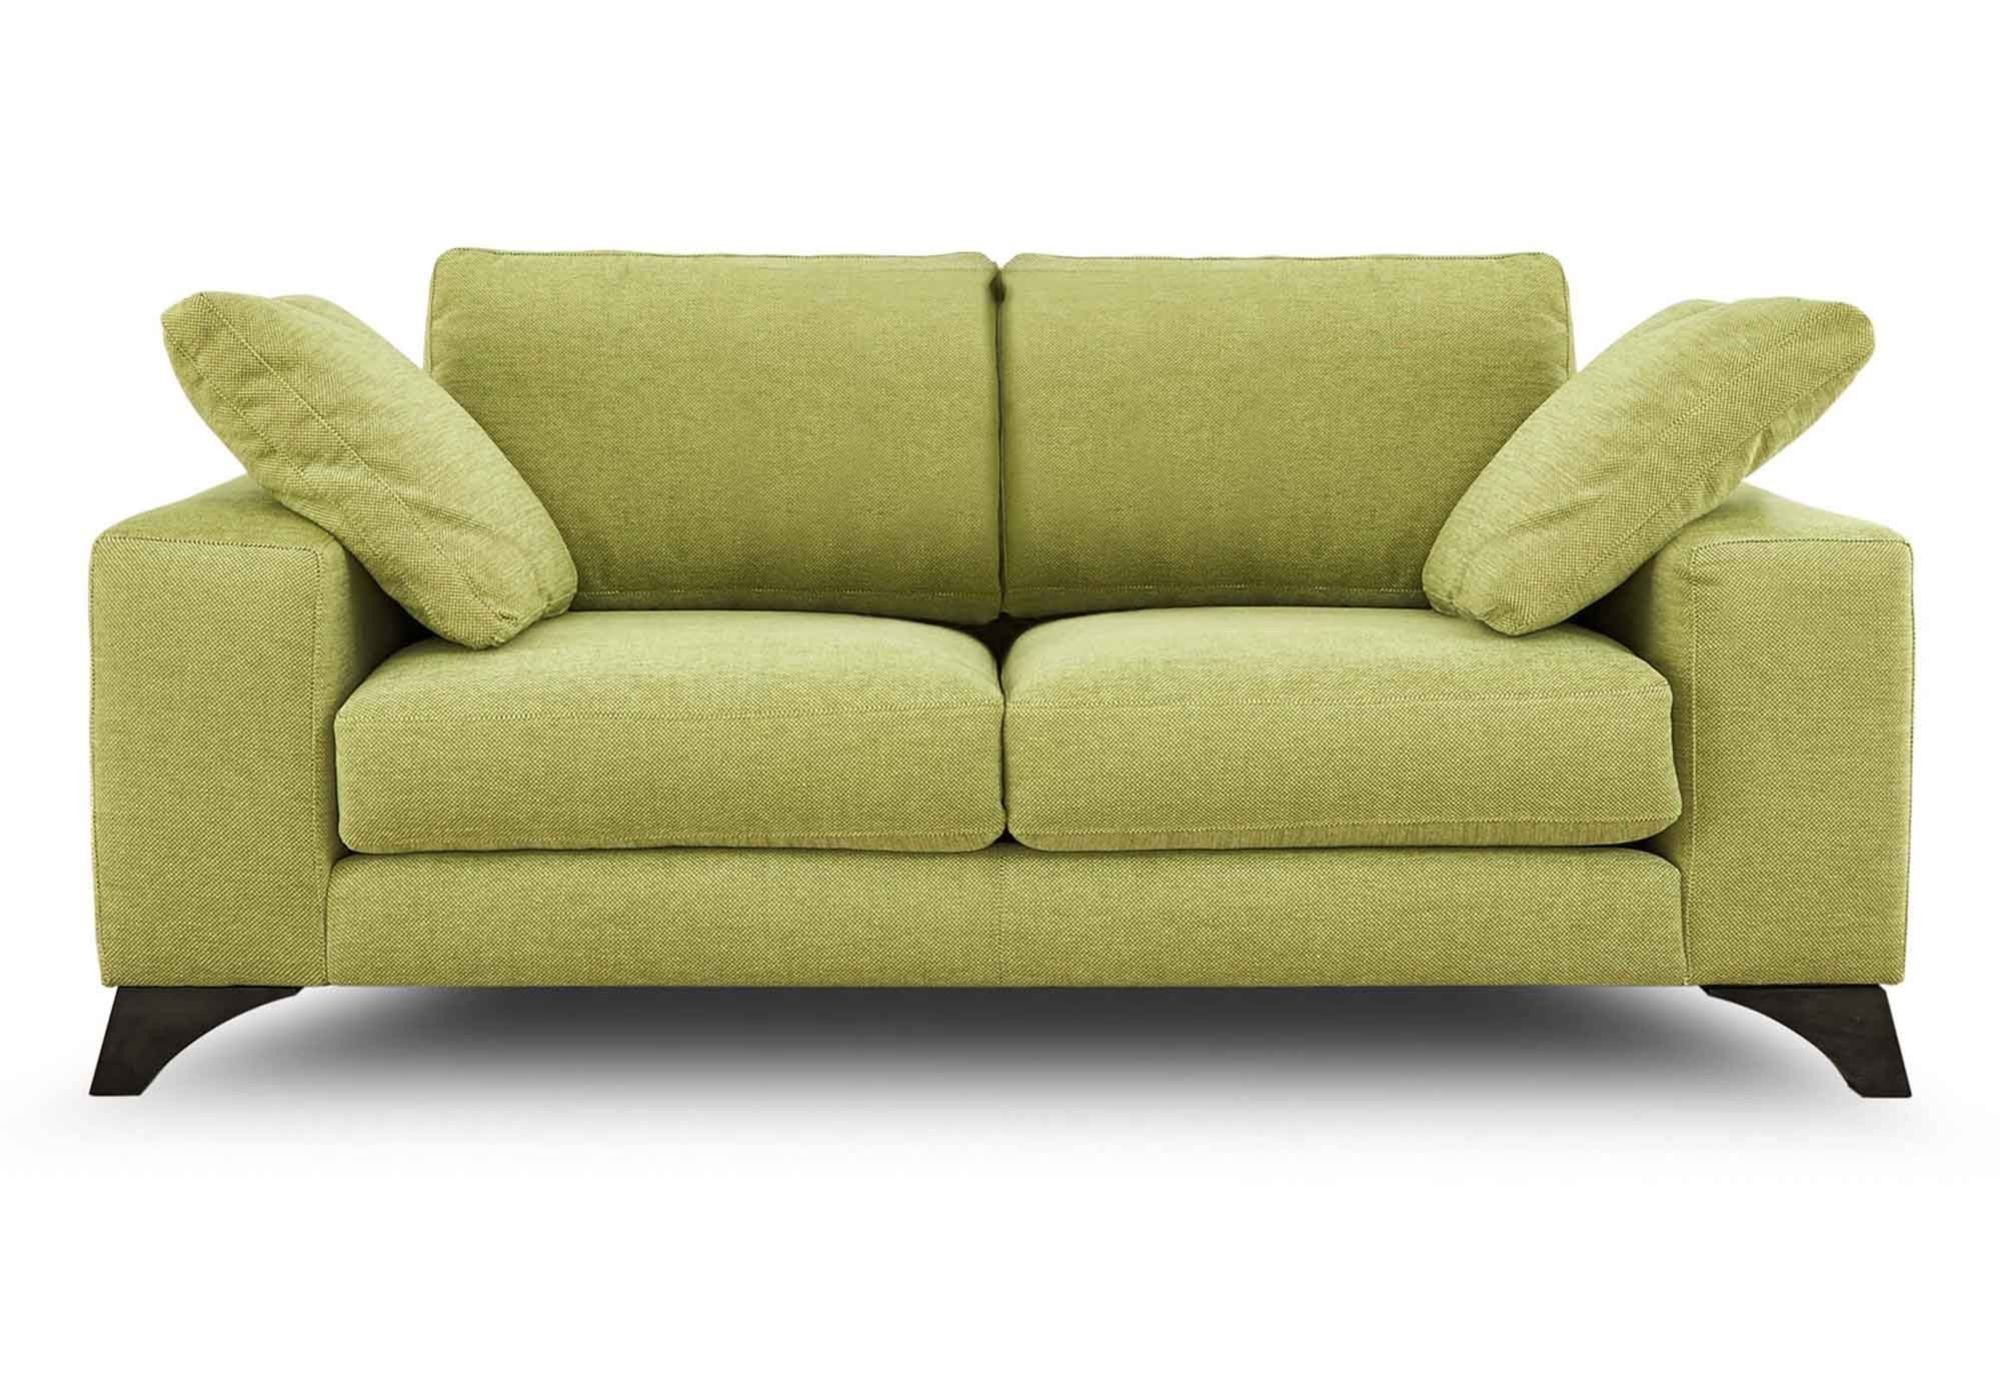 Lime green sofa le corbusier style lc3 sofa in leather for Lime green sofa